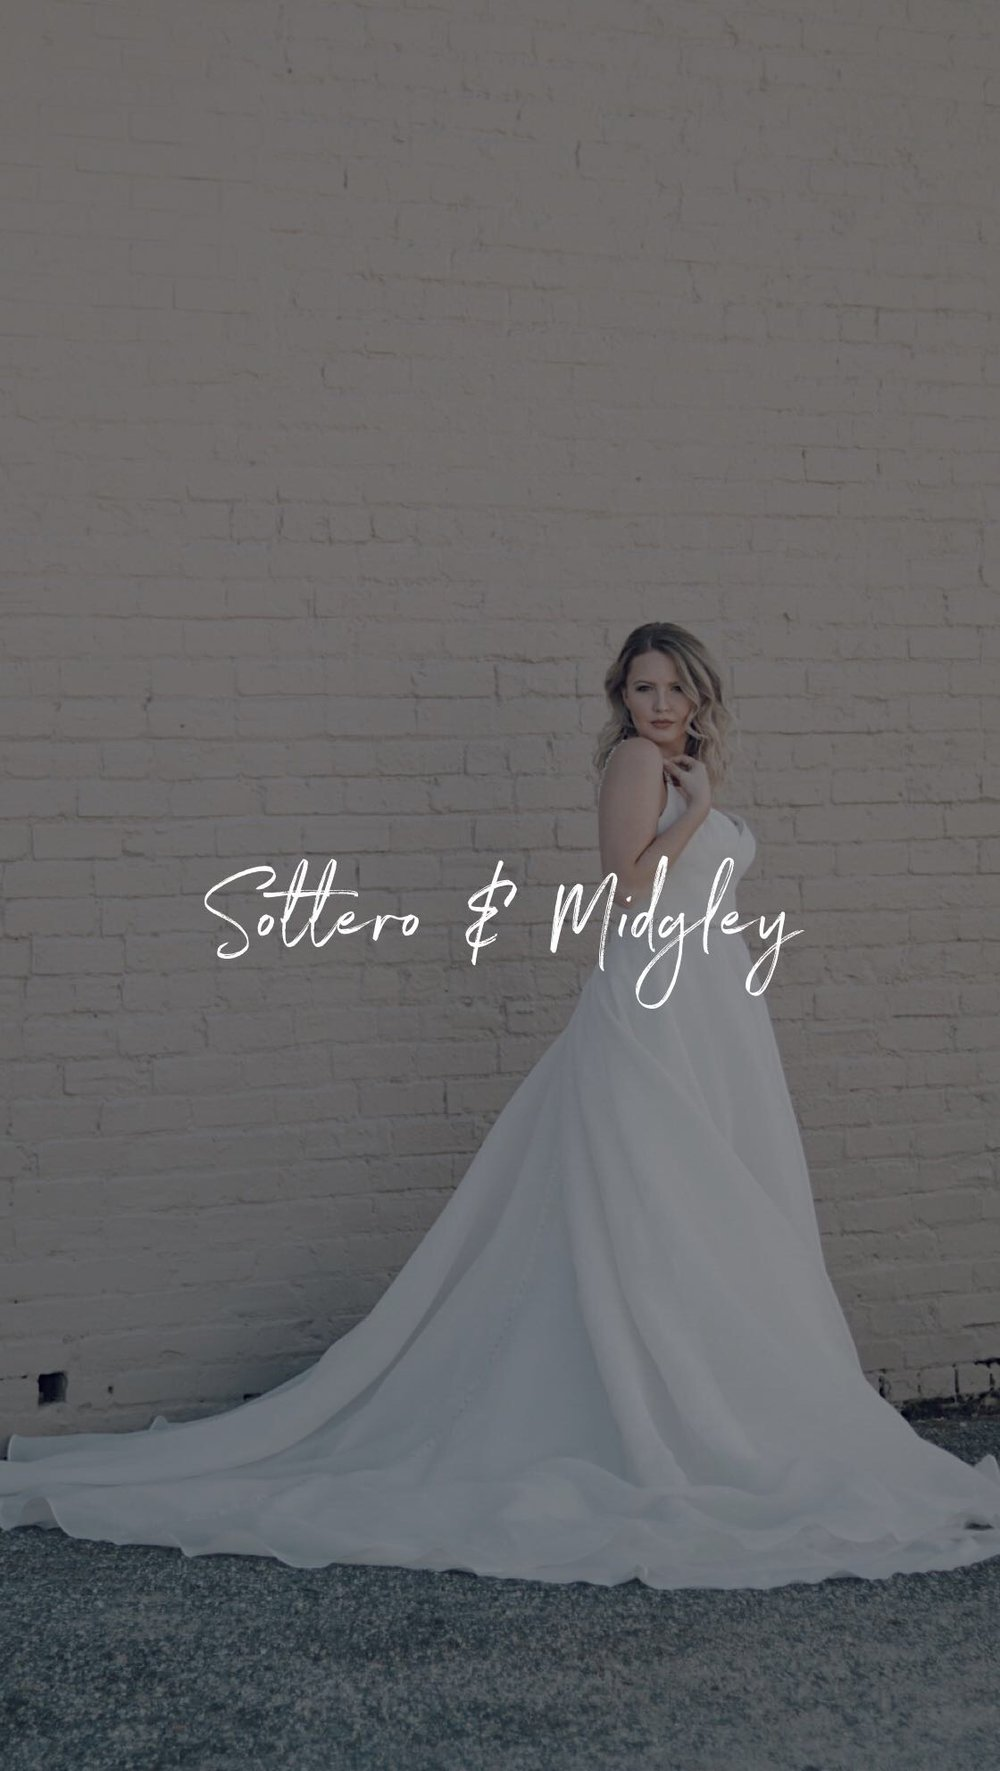 sottero and midgley website.JPG